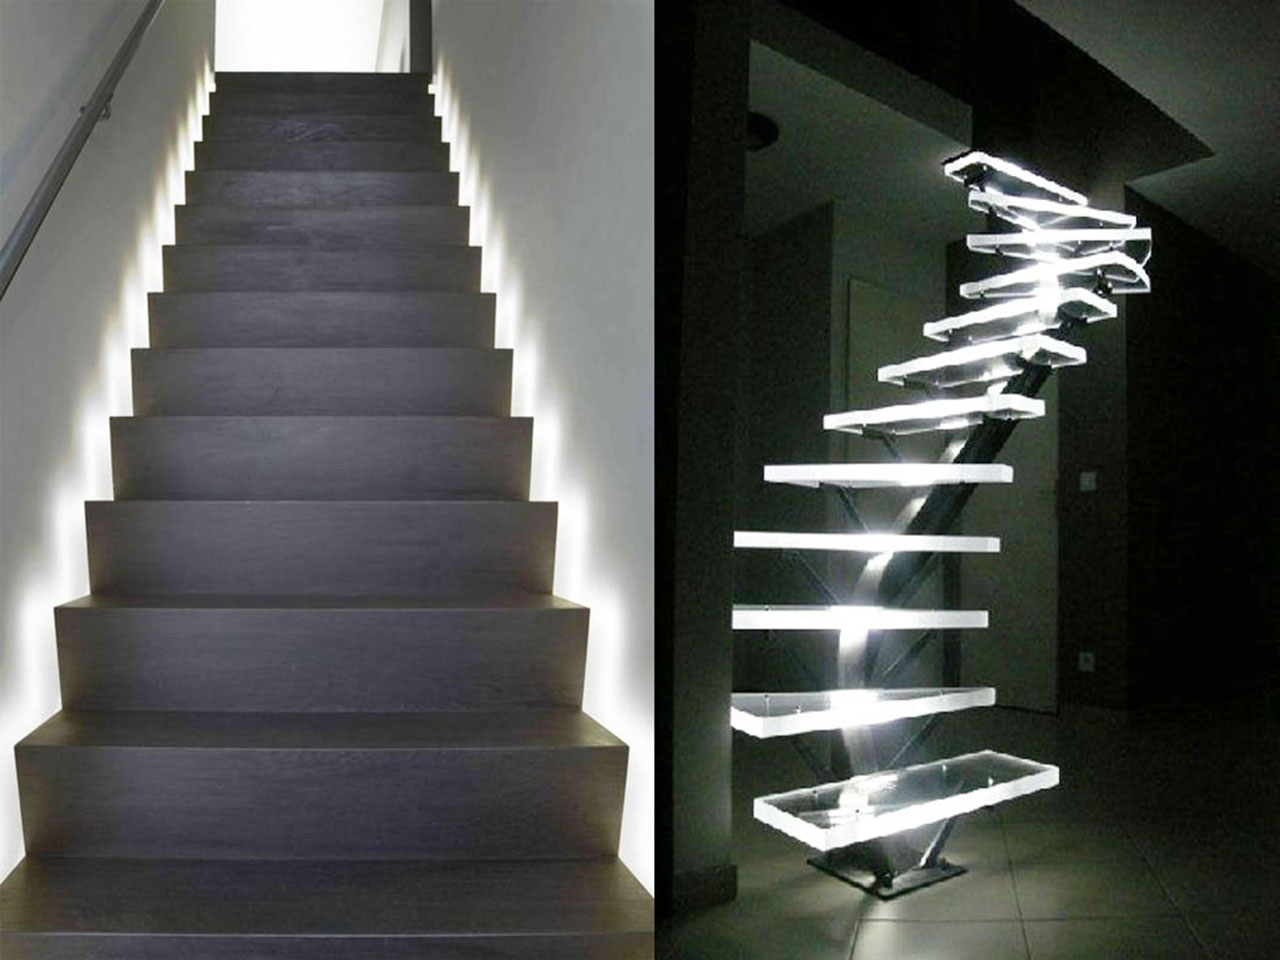 Descubre la decoraci n con luces led y todas sus ventajas - Escaleras con led ...